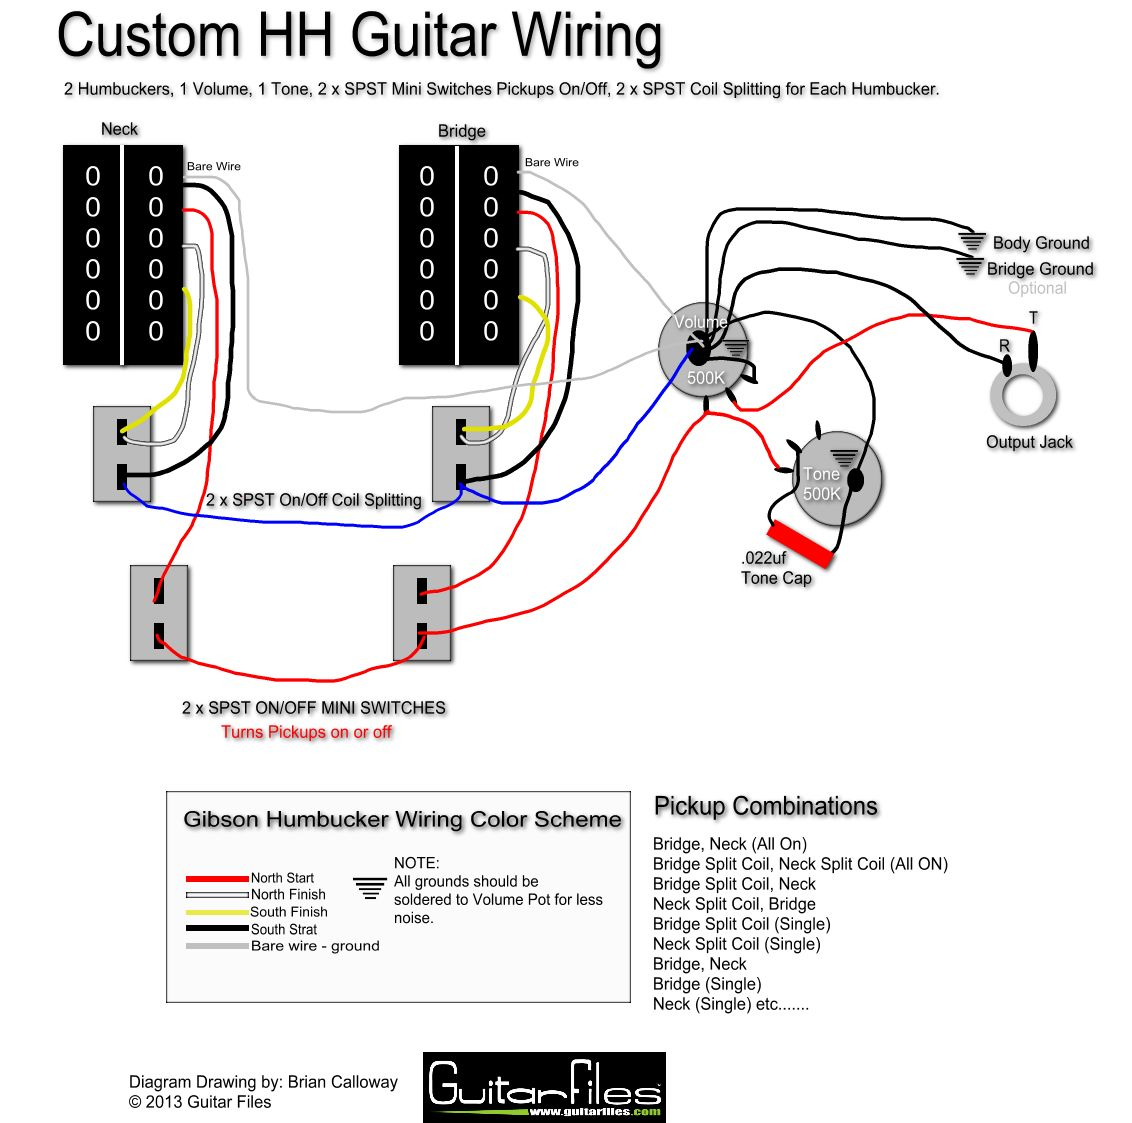 Electric Guitar Wiring Diagram One Pickup 2006 Ford F150 Power Mirror Custom Hh With Spst Coil Splitting And